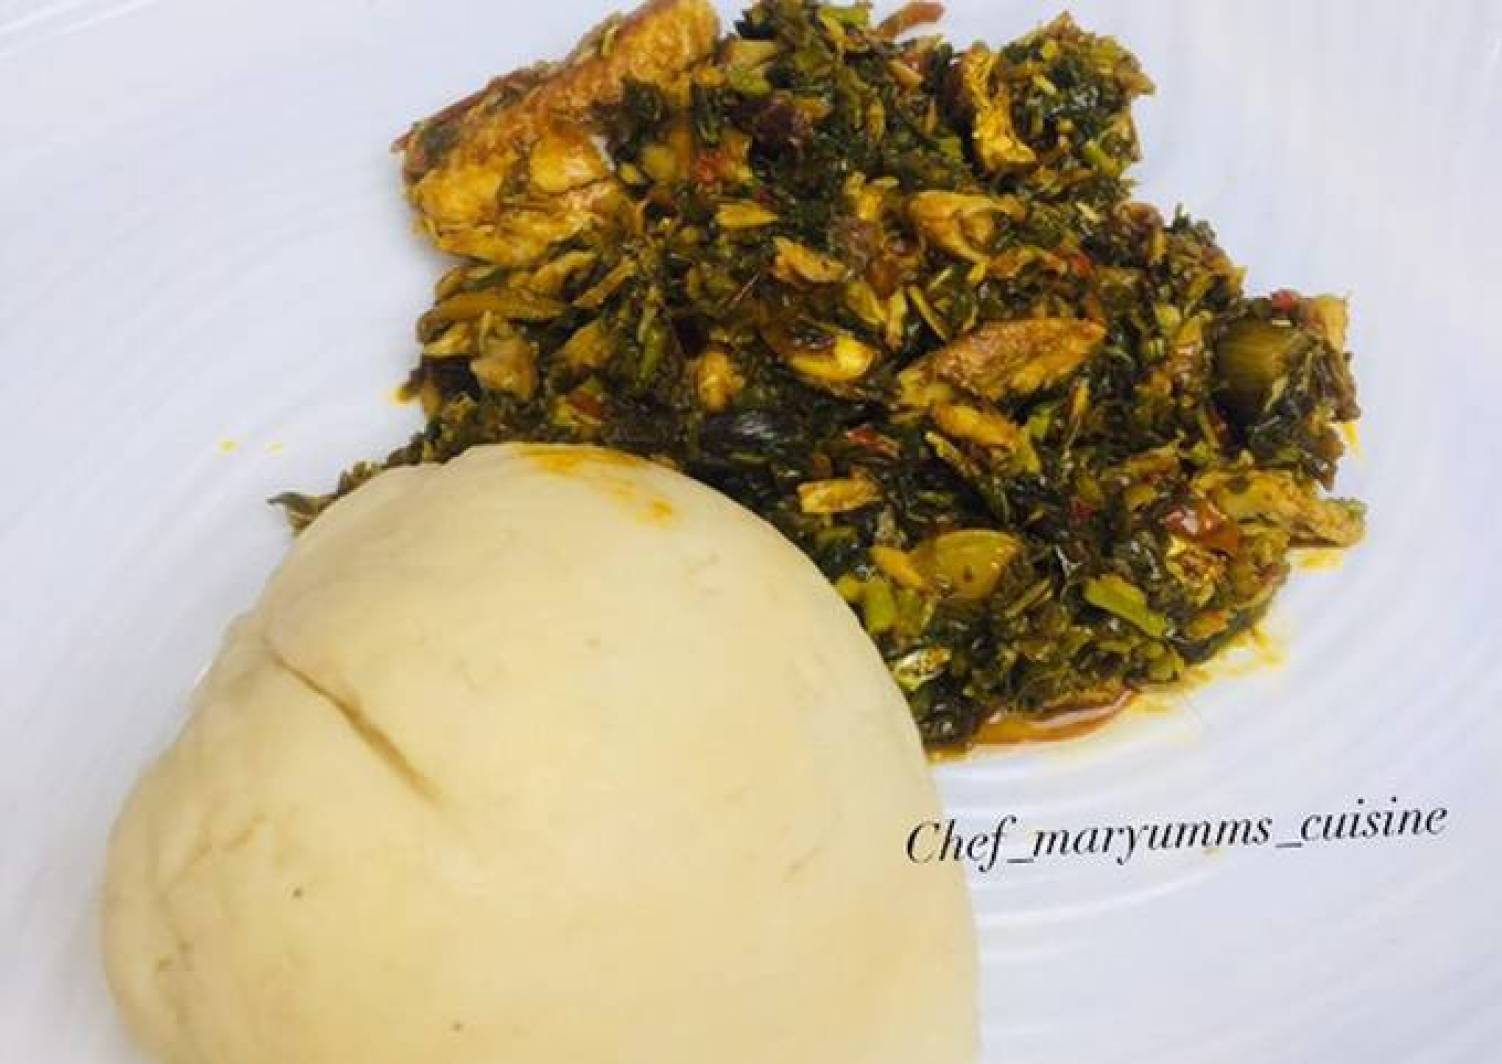 Vegetable soup and pounded yam by chef maryumms cuisine🌸